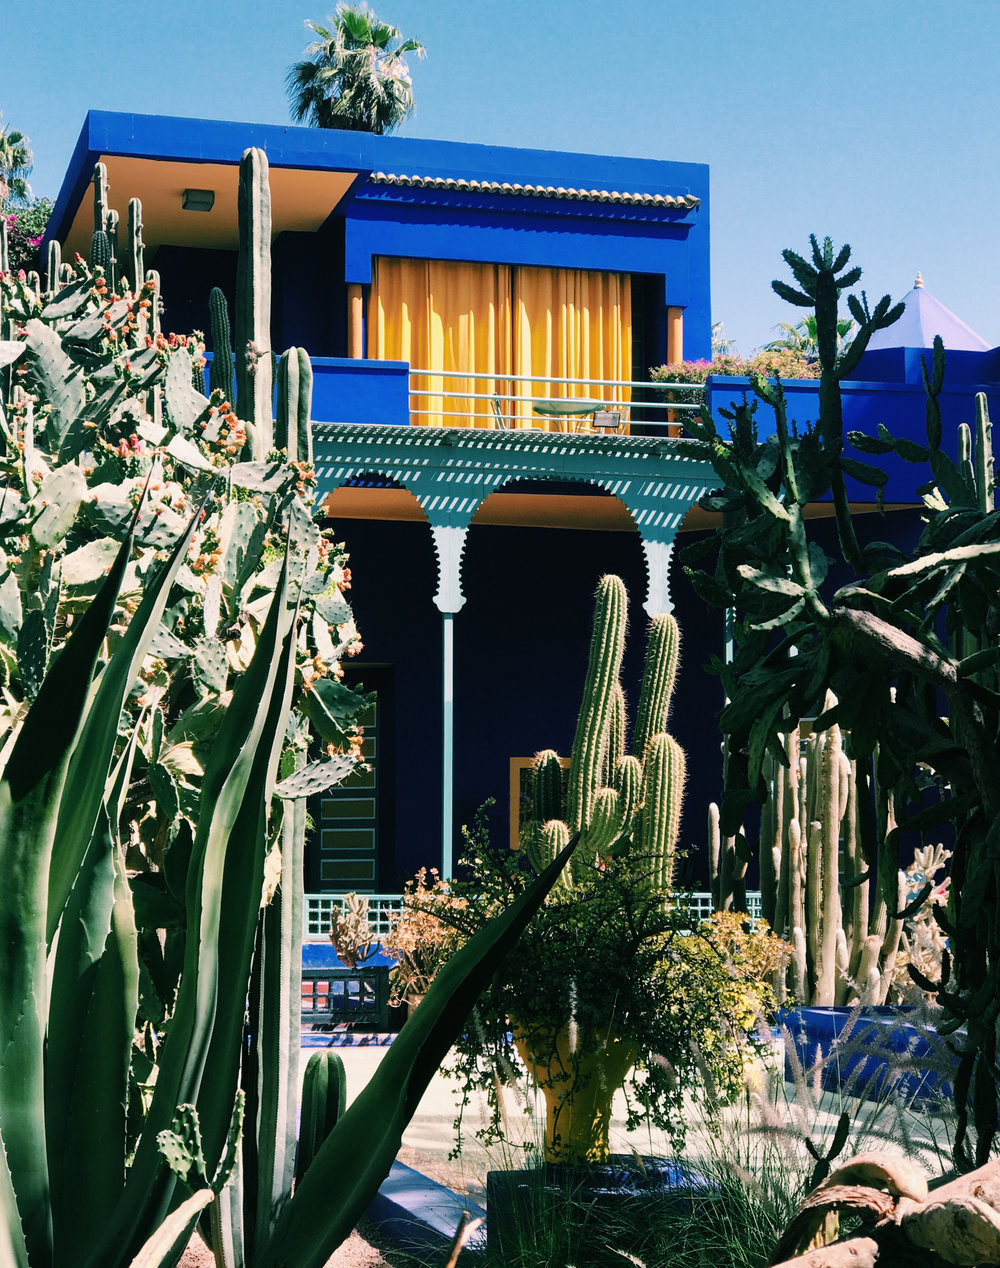 JARDIN MAJORELLE | A 12-ACRE BOTANICAL GARDEN CREATED BY PAINTER JACQUES MAJORELLE AND THEN TAKEN OVER AND PRESERVED BY YVES SAINT-LAURENT AND PIERRE BERGé.